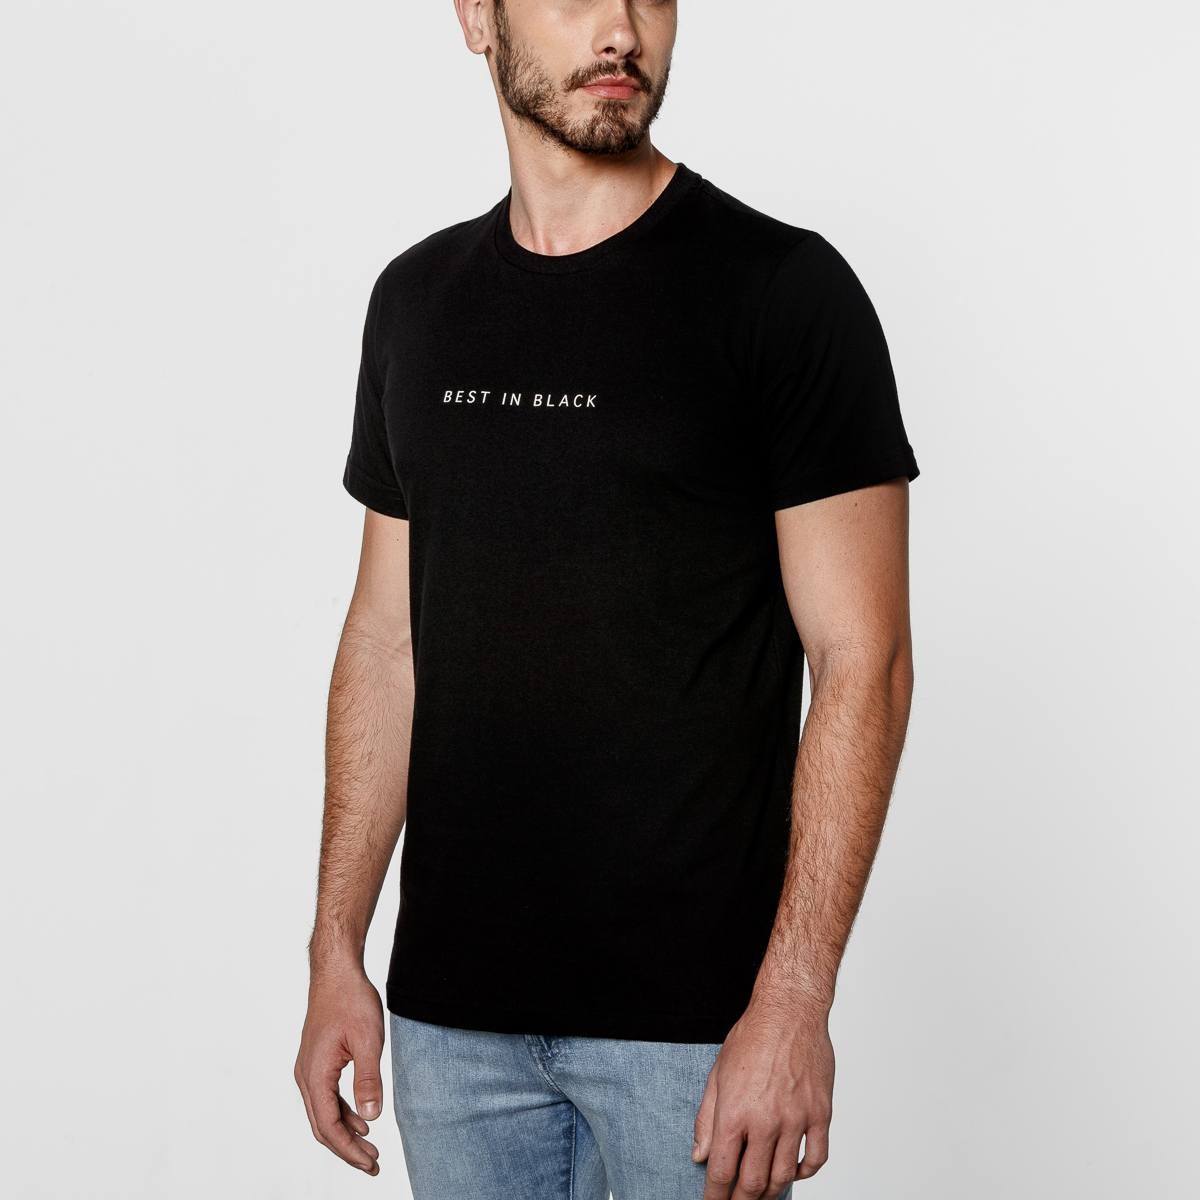 Camiseta Tresano Best in Black Slim Fit